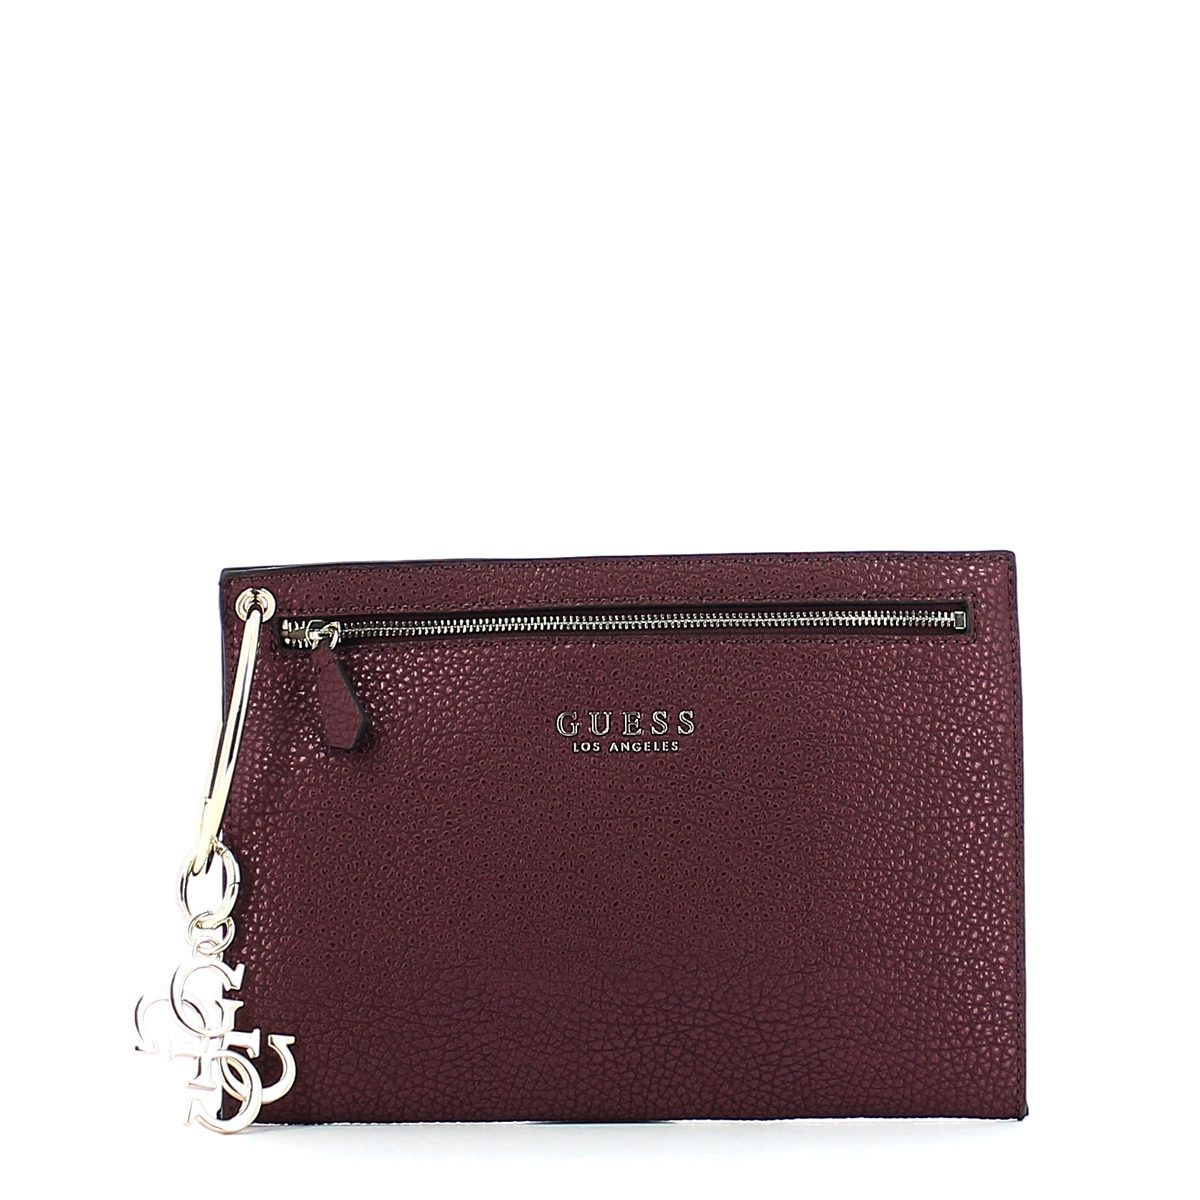 BROOKLYN RING CLUTCH